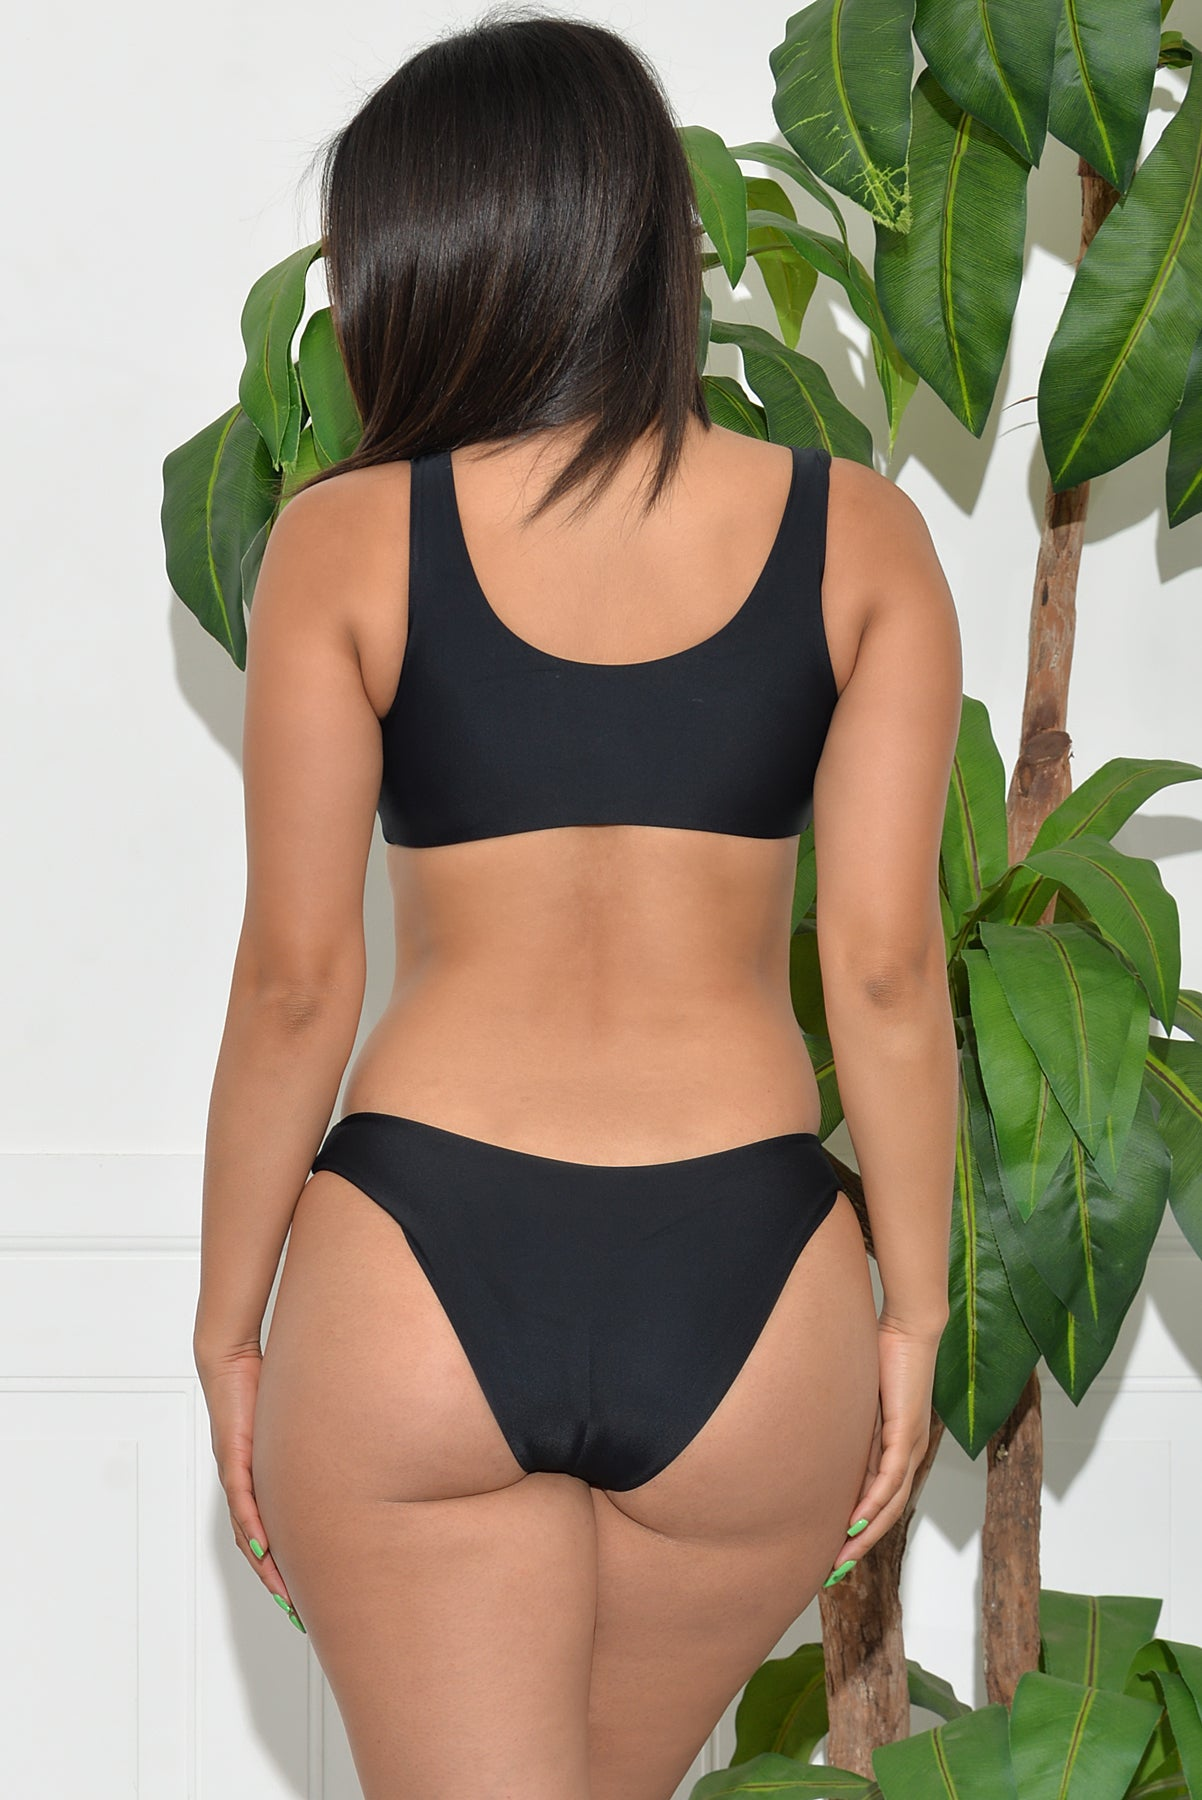 Ventura Beach Two Piece Swimsuit - Black